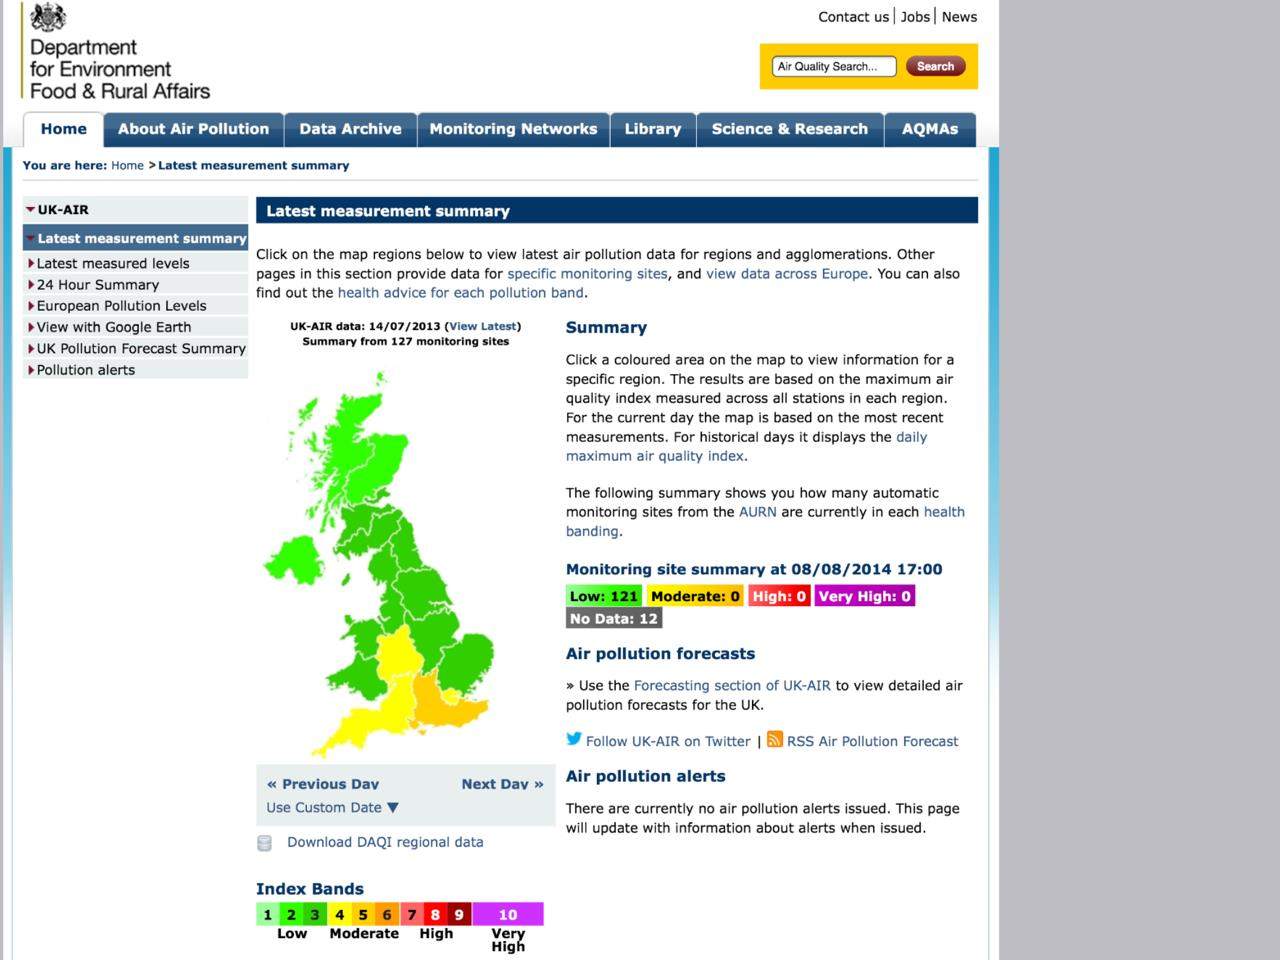 Exhibit 15 Defra air pollution summary 140713 archived_Retrieved 080814